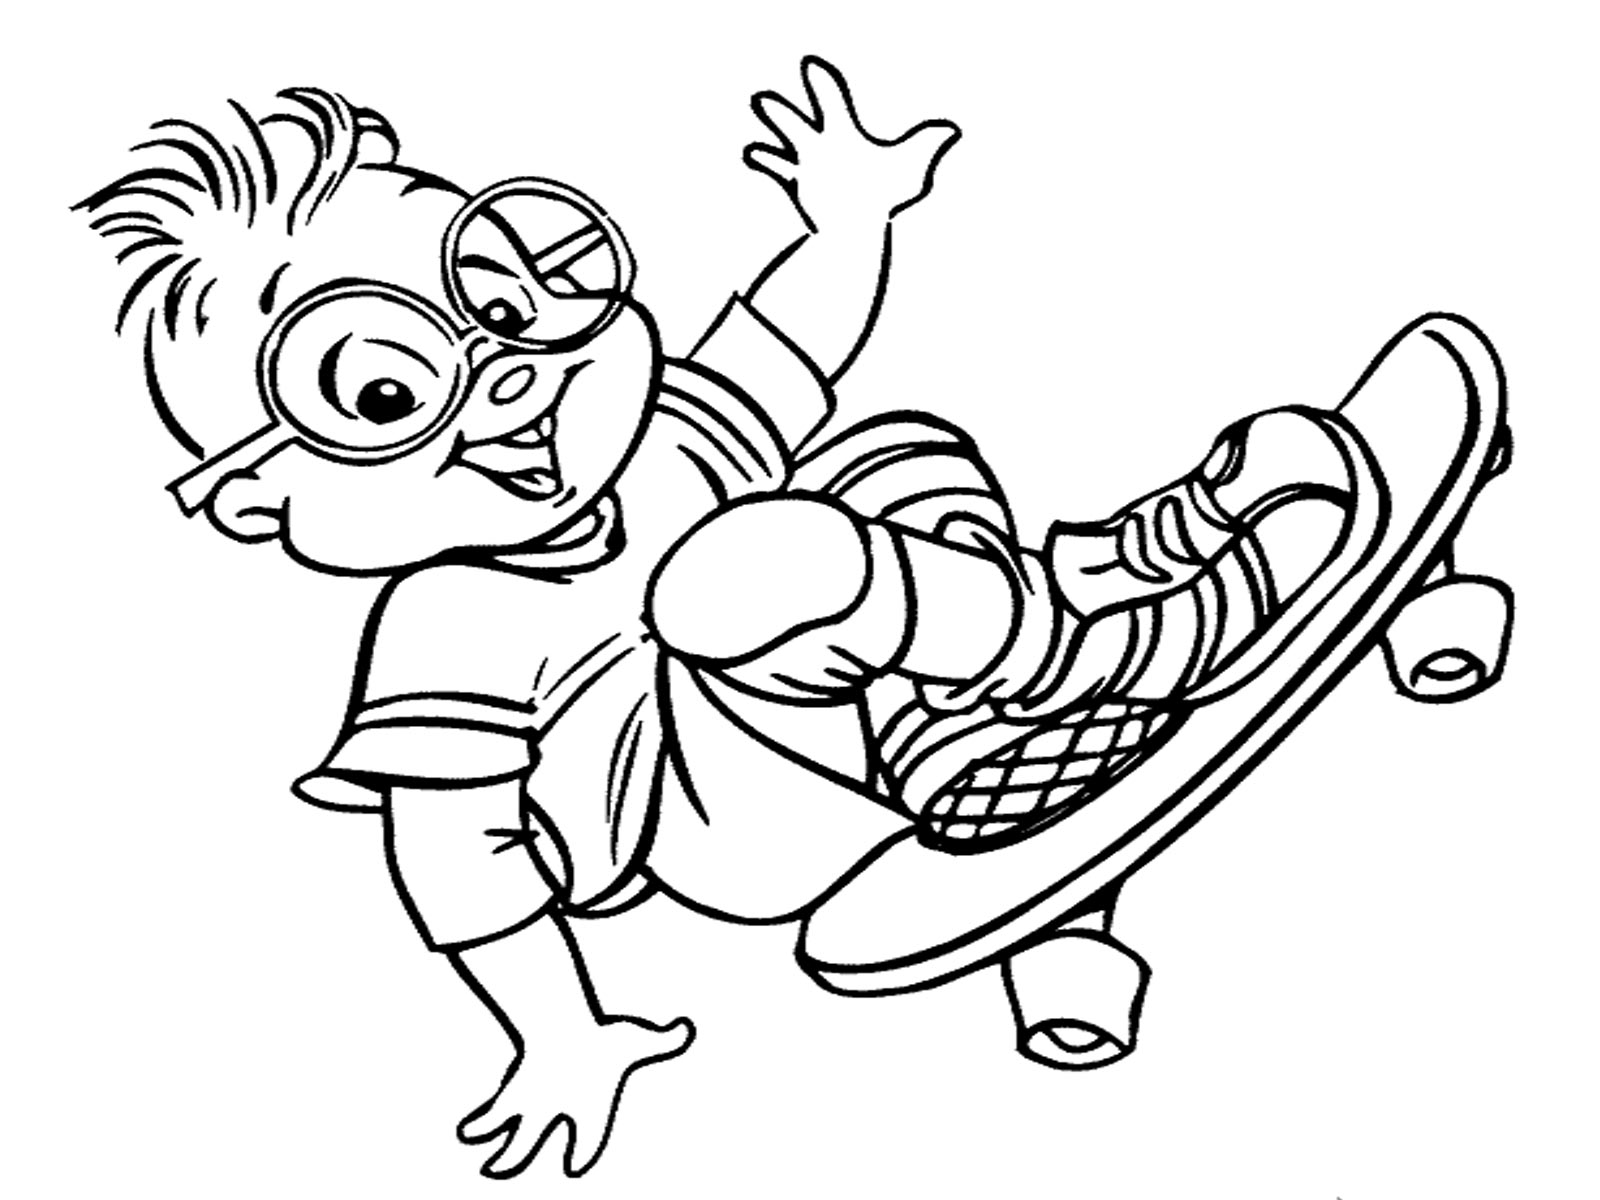 free printable coloring pages north afri - Theodore Chipmunk Coloring Pages